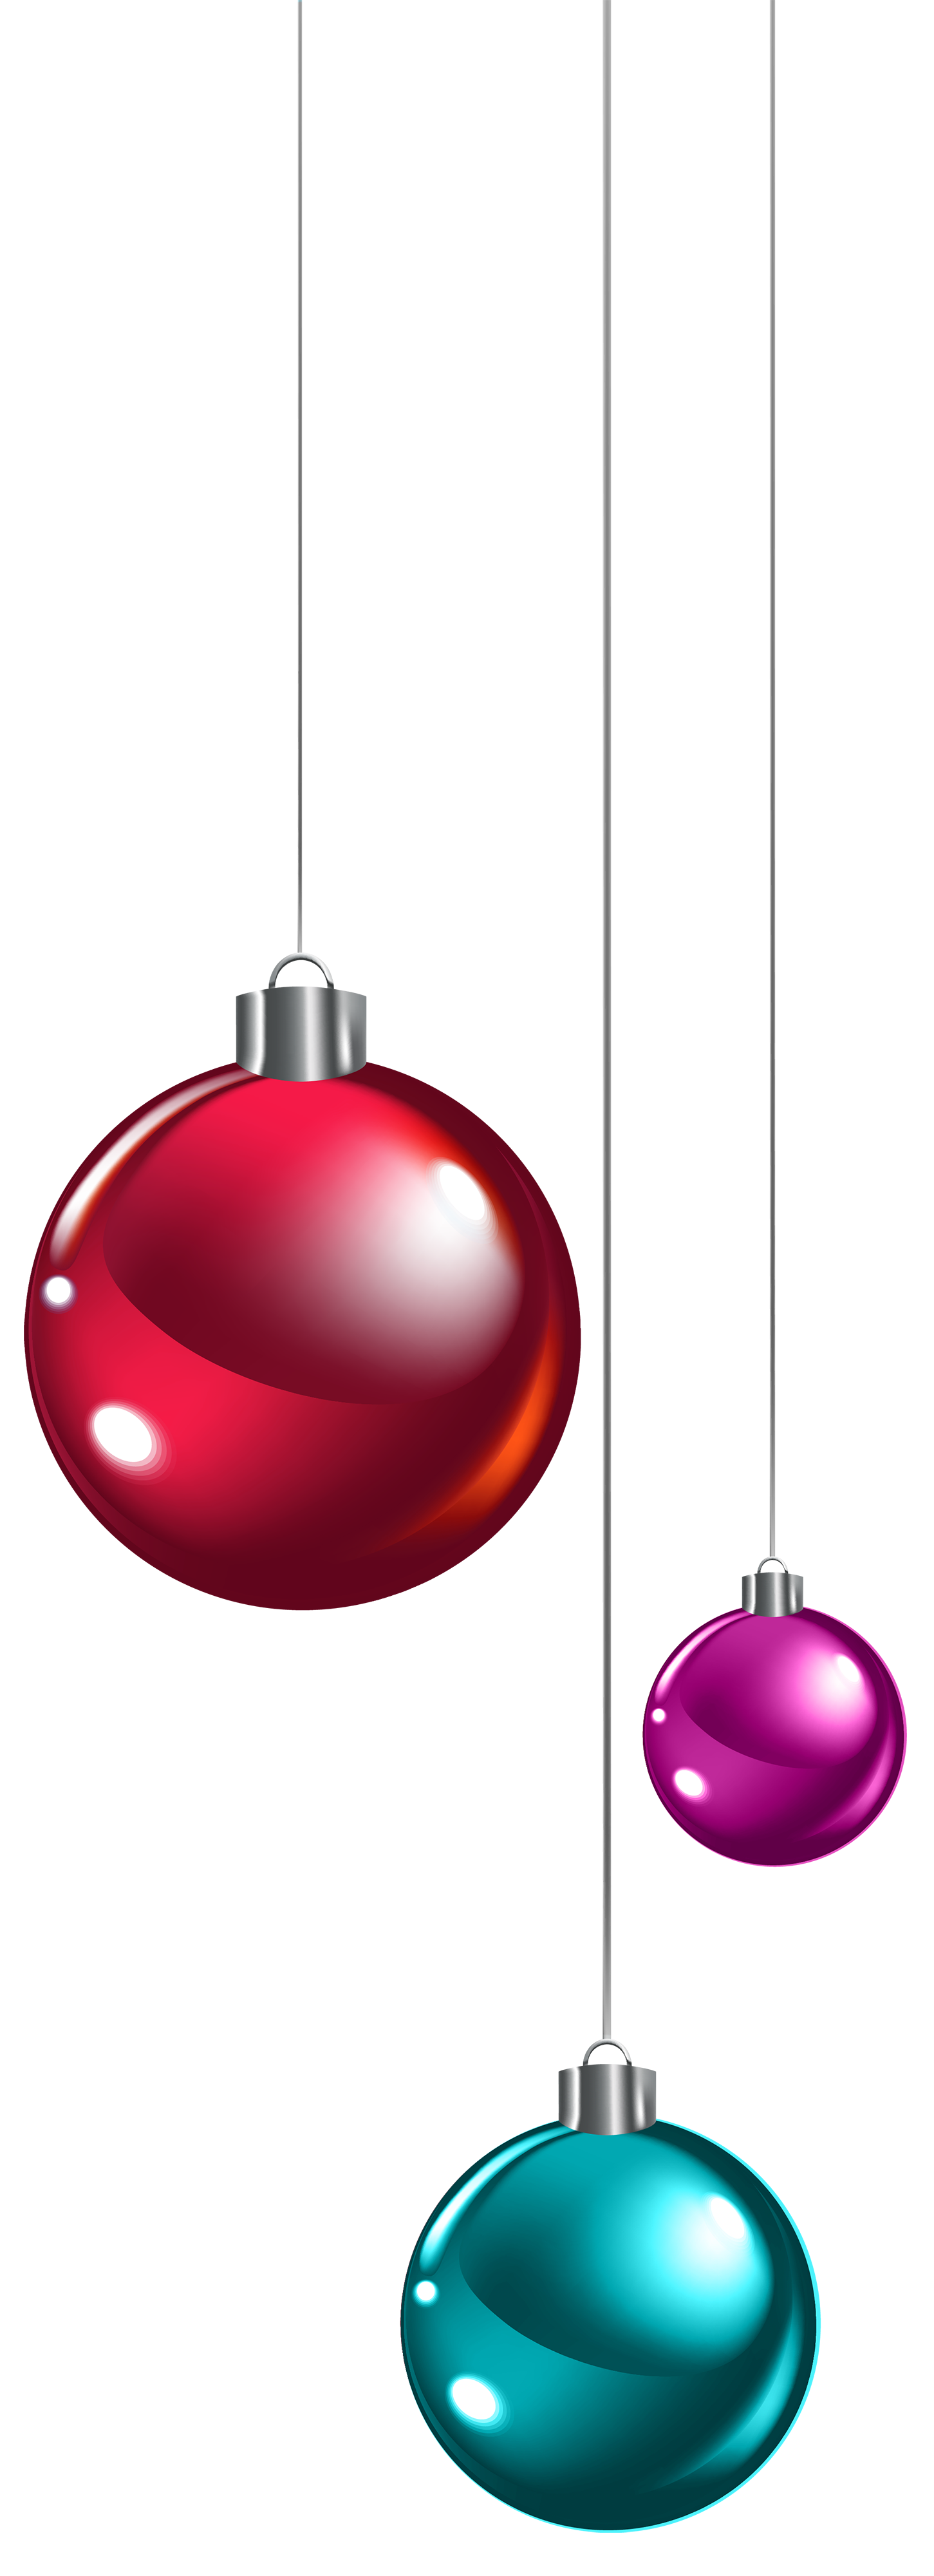 Hanging christmas ornaments clipart banner transparent download 28+ Collection of Hanging Christmas Ornaments Clipart | High quality ... banner transparent download